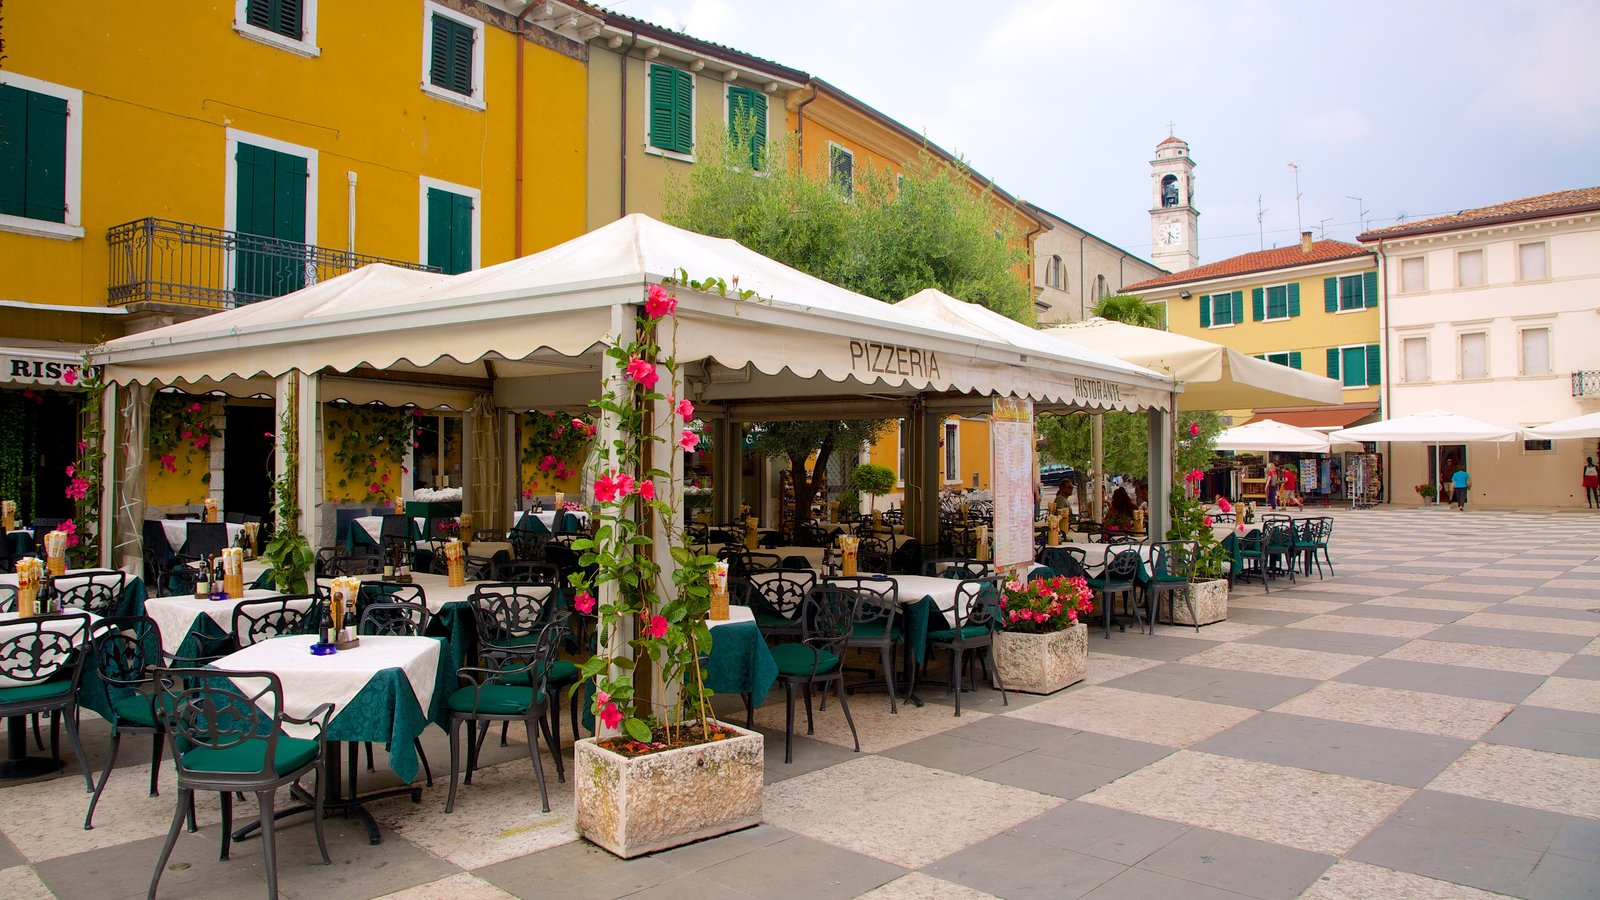 Lazise featuring a city and outdoor eating